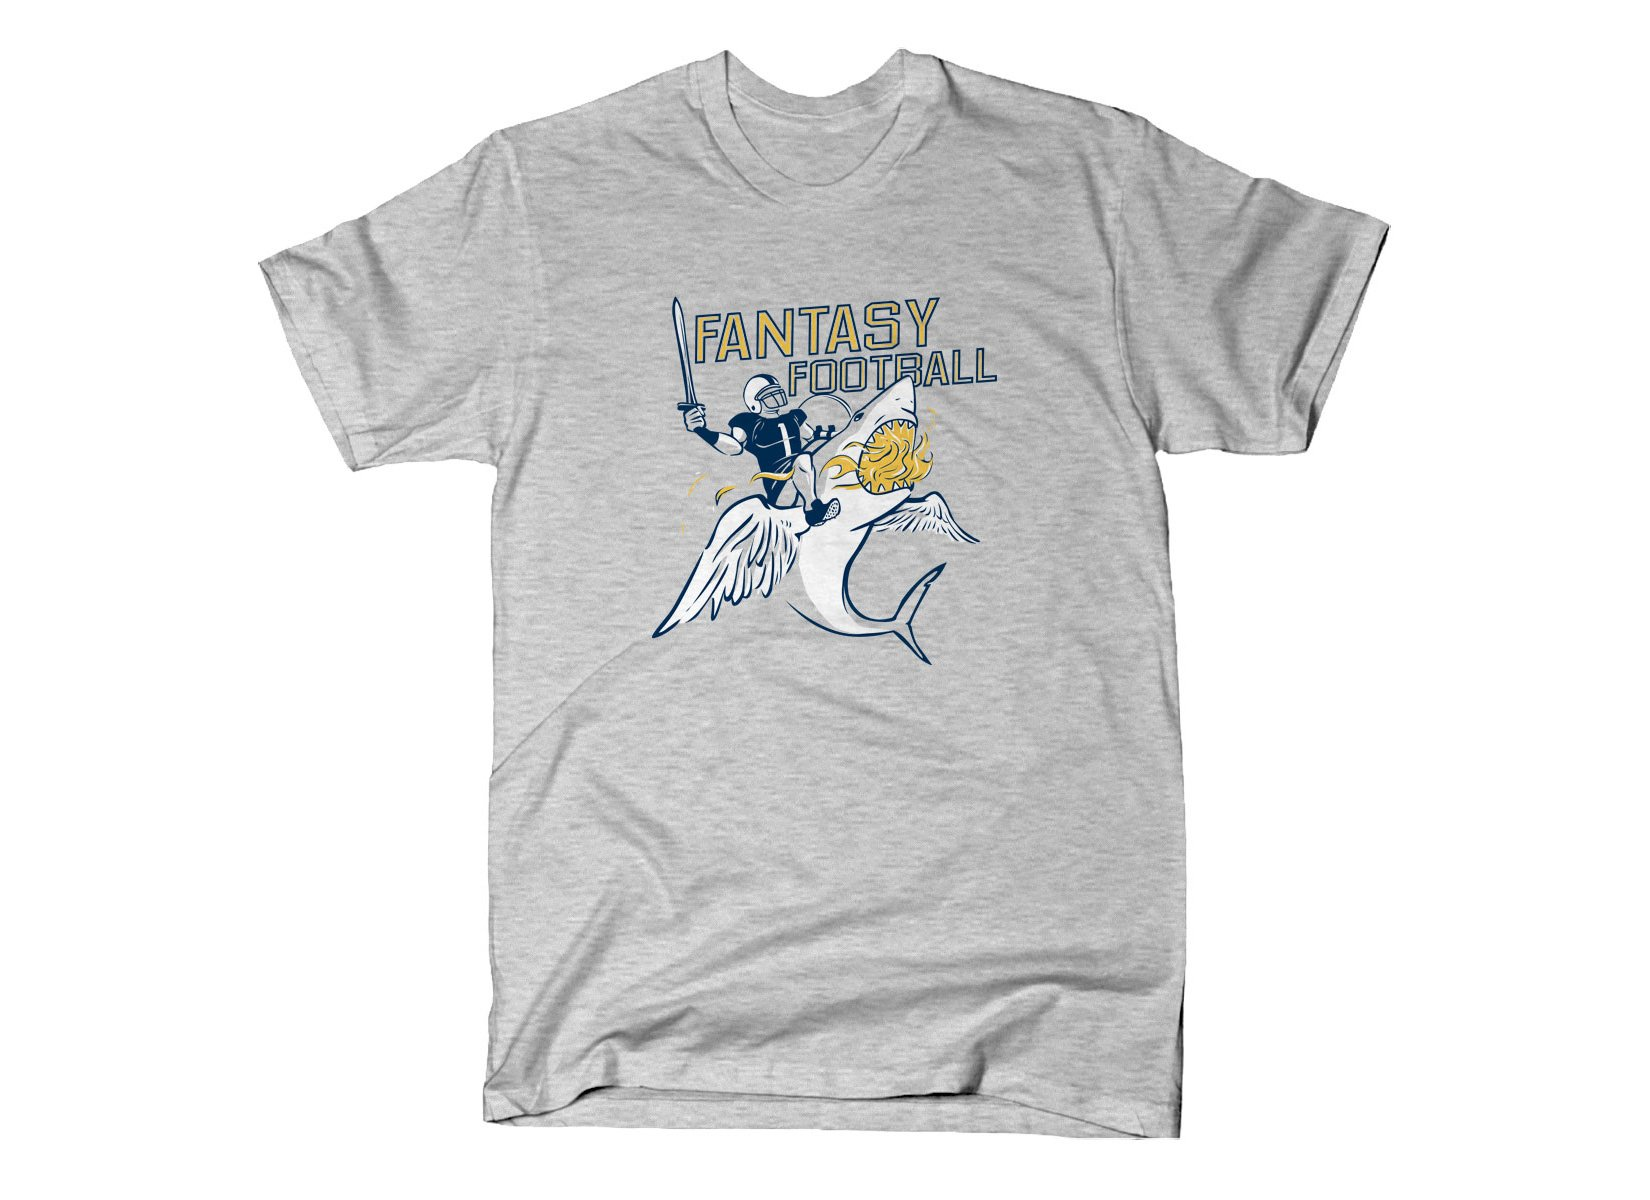 Fantasy Football on Mens T-Shirt